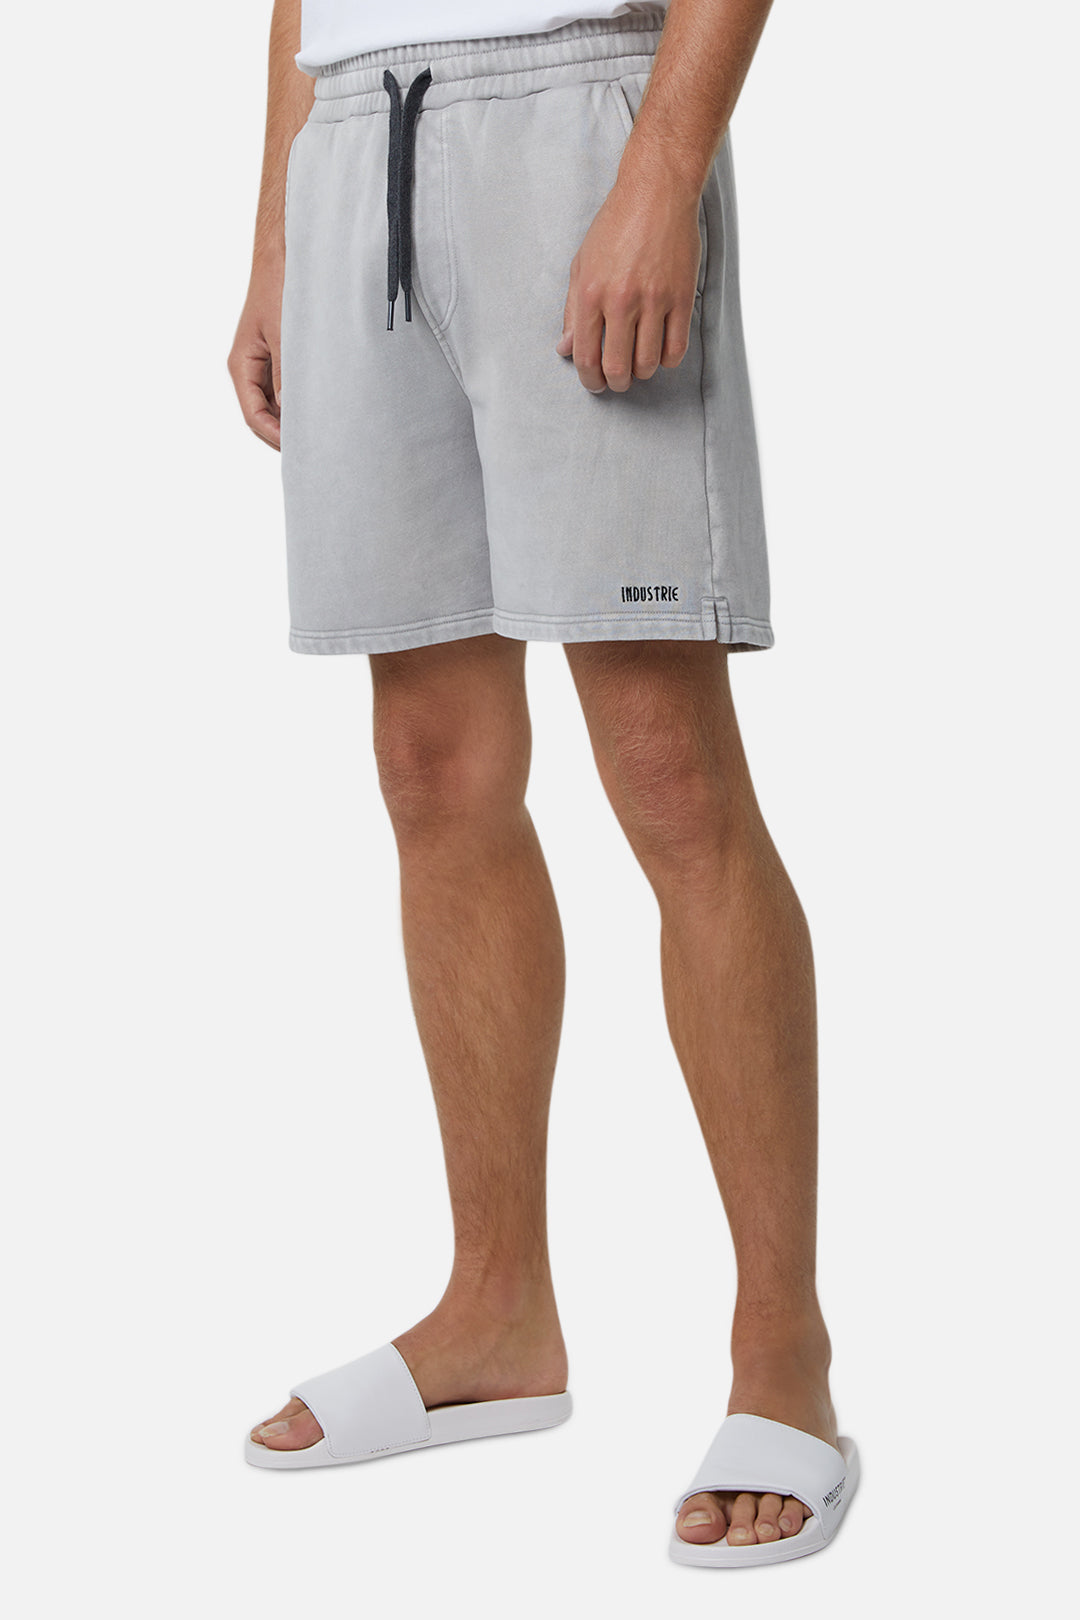 The Del Sur Od Track Short - OD Light Grey